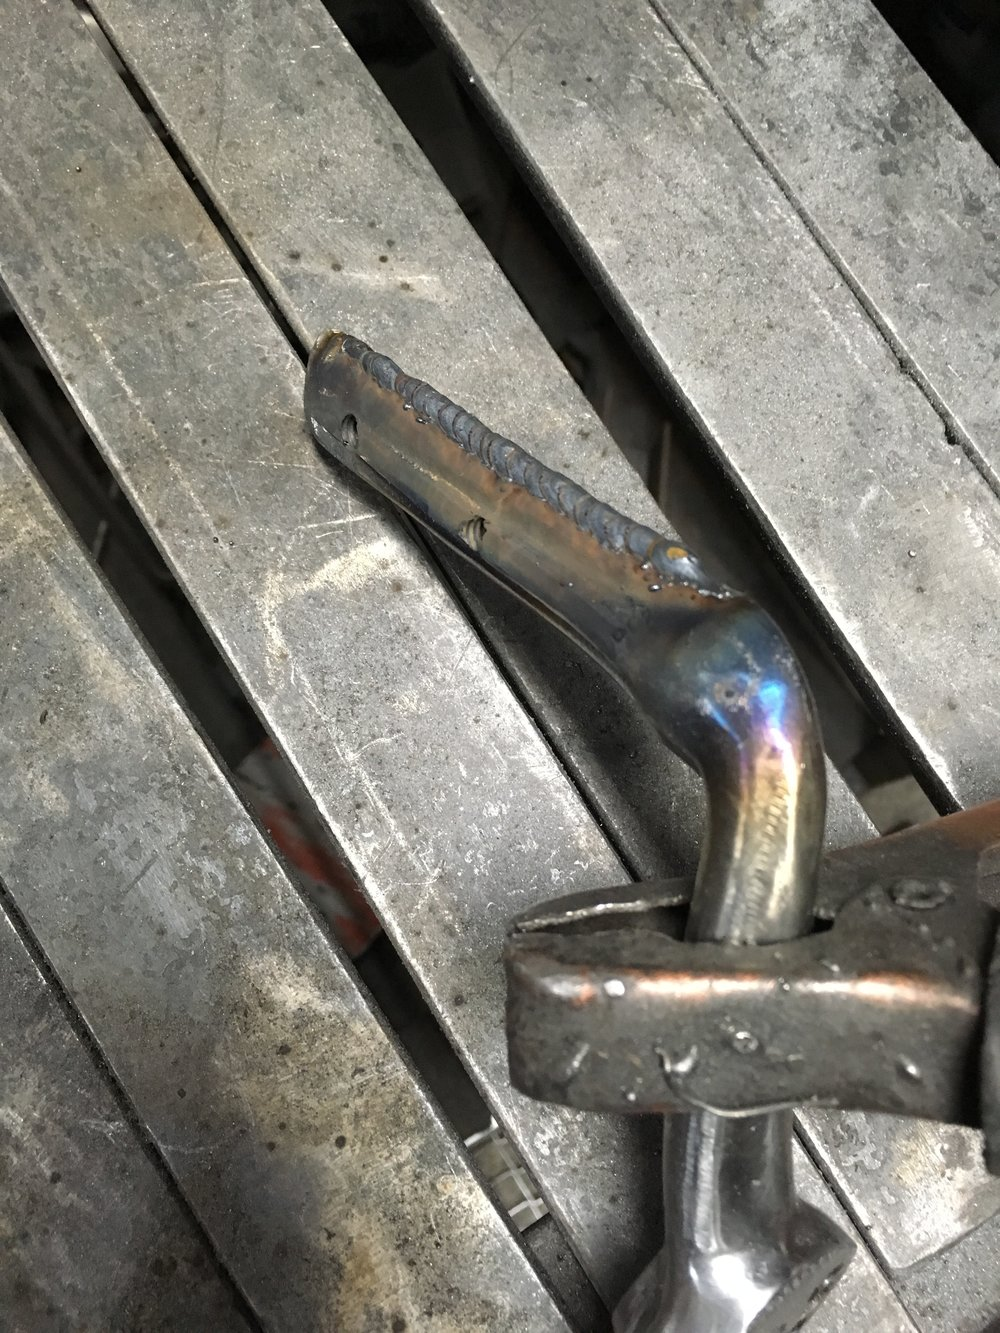 After the top was ground flat, holes were drilled and tapped, and the sides widened by welding.